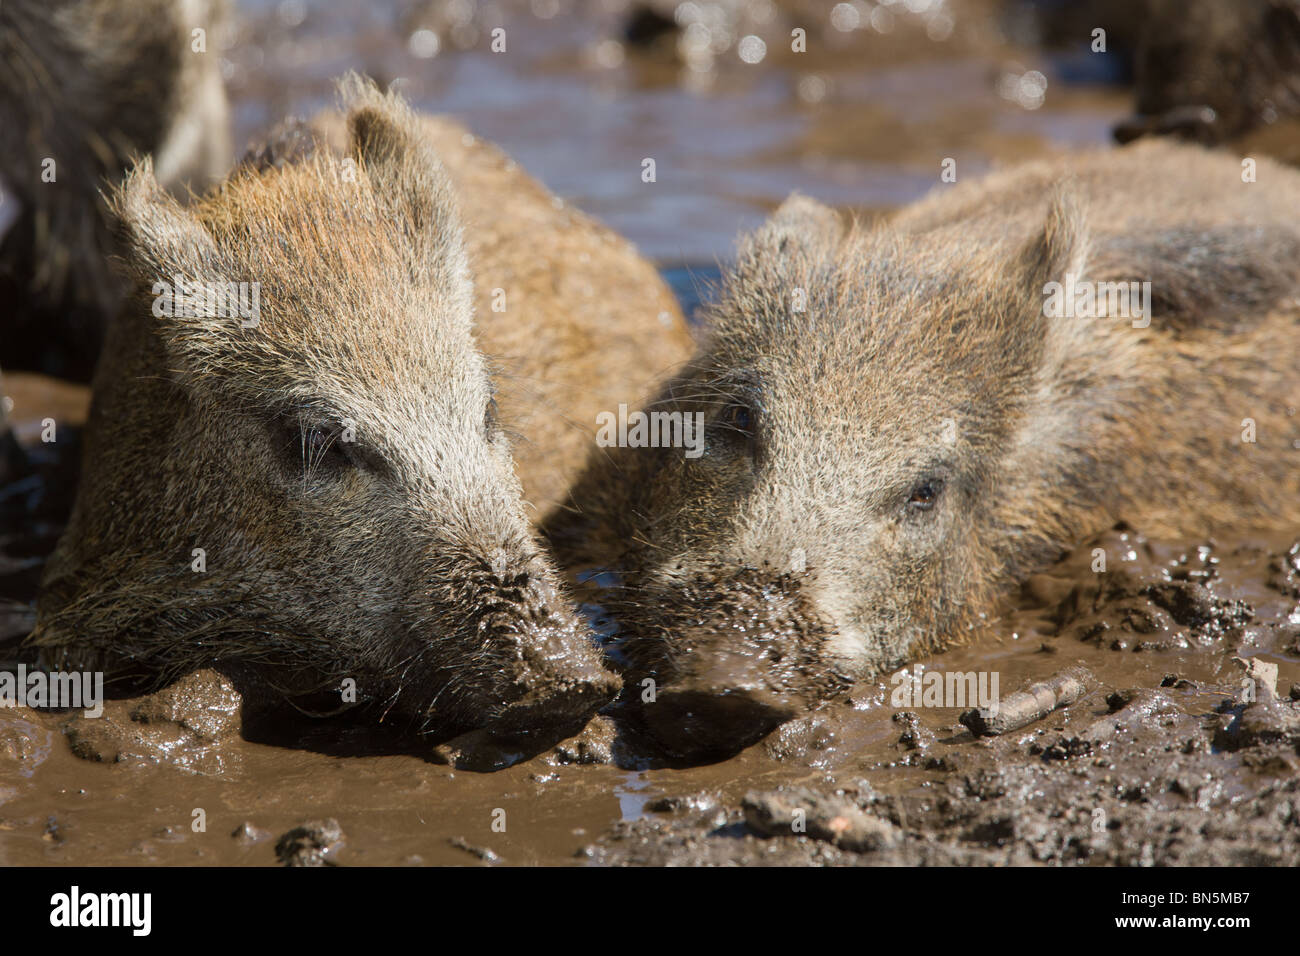 two young Wild Boar taking a mud bath togehter - Sus scrofa - Stock Image